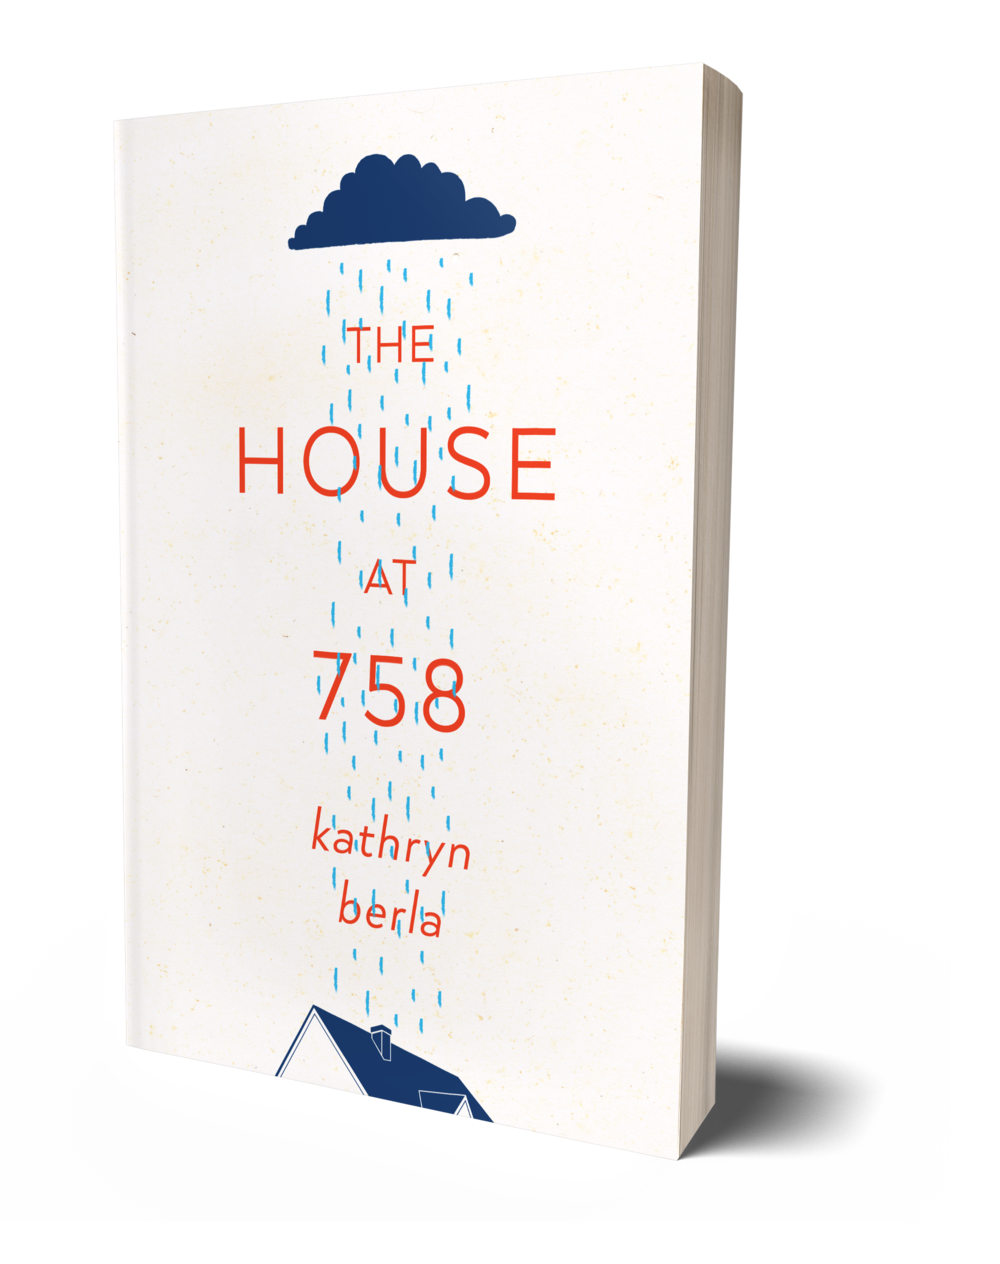 The House at 758 book cover, cloud raining on house, white background, red words, blue rooftop